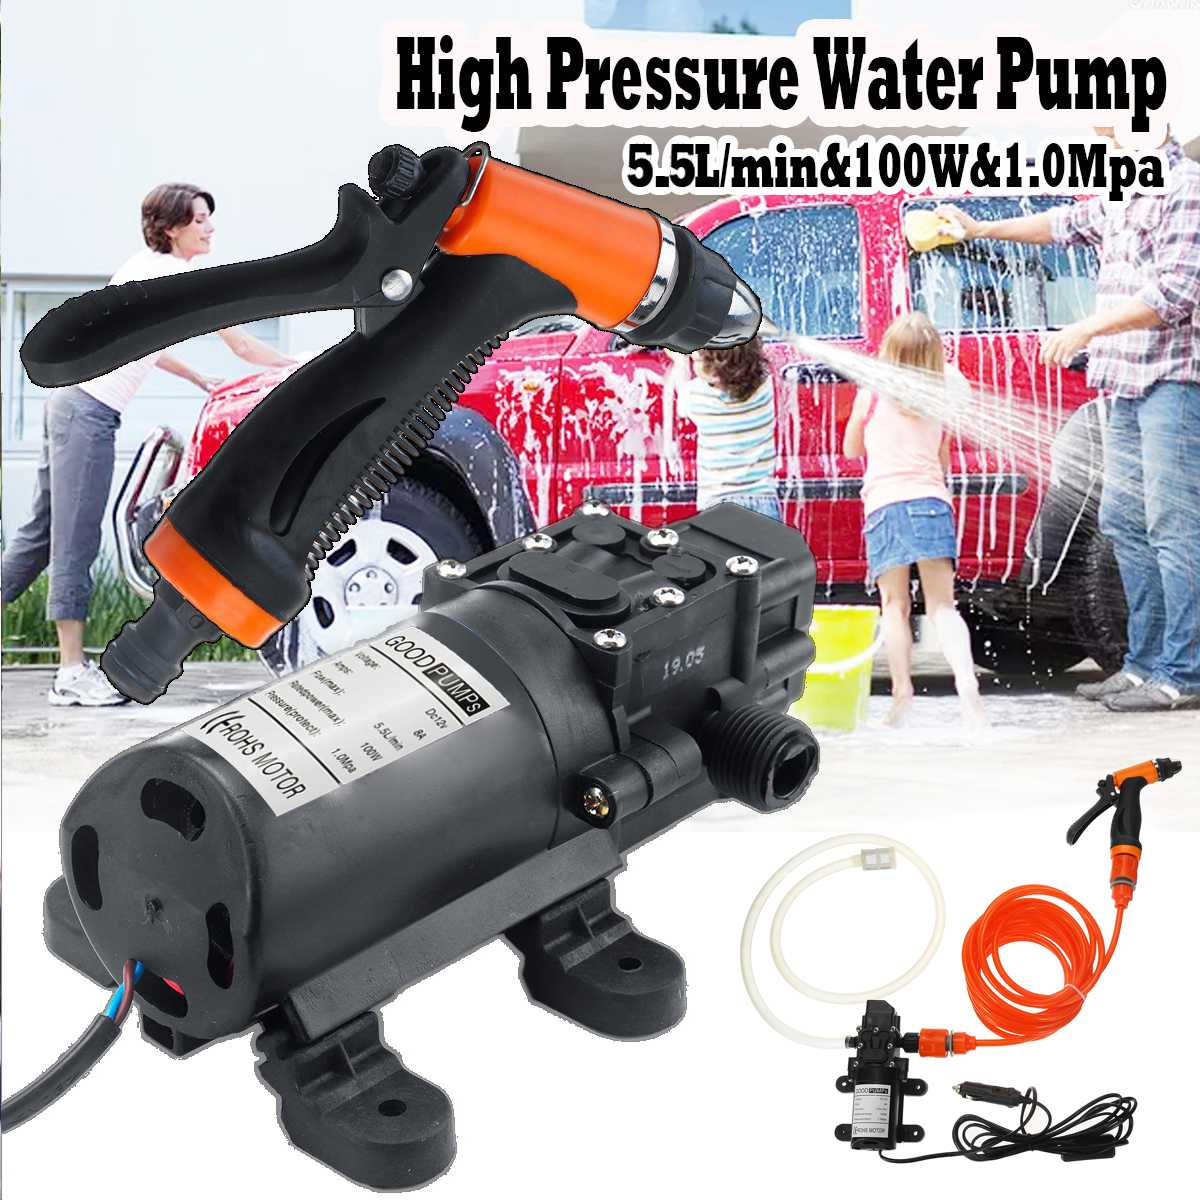 Water Pump 12V 100W 5.5L/Min Stable High Pressure Diaphragm Water Pump Sprayer Car Wash 12 V Self Priming Water Pump image